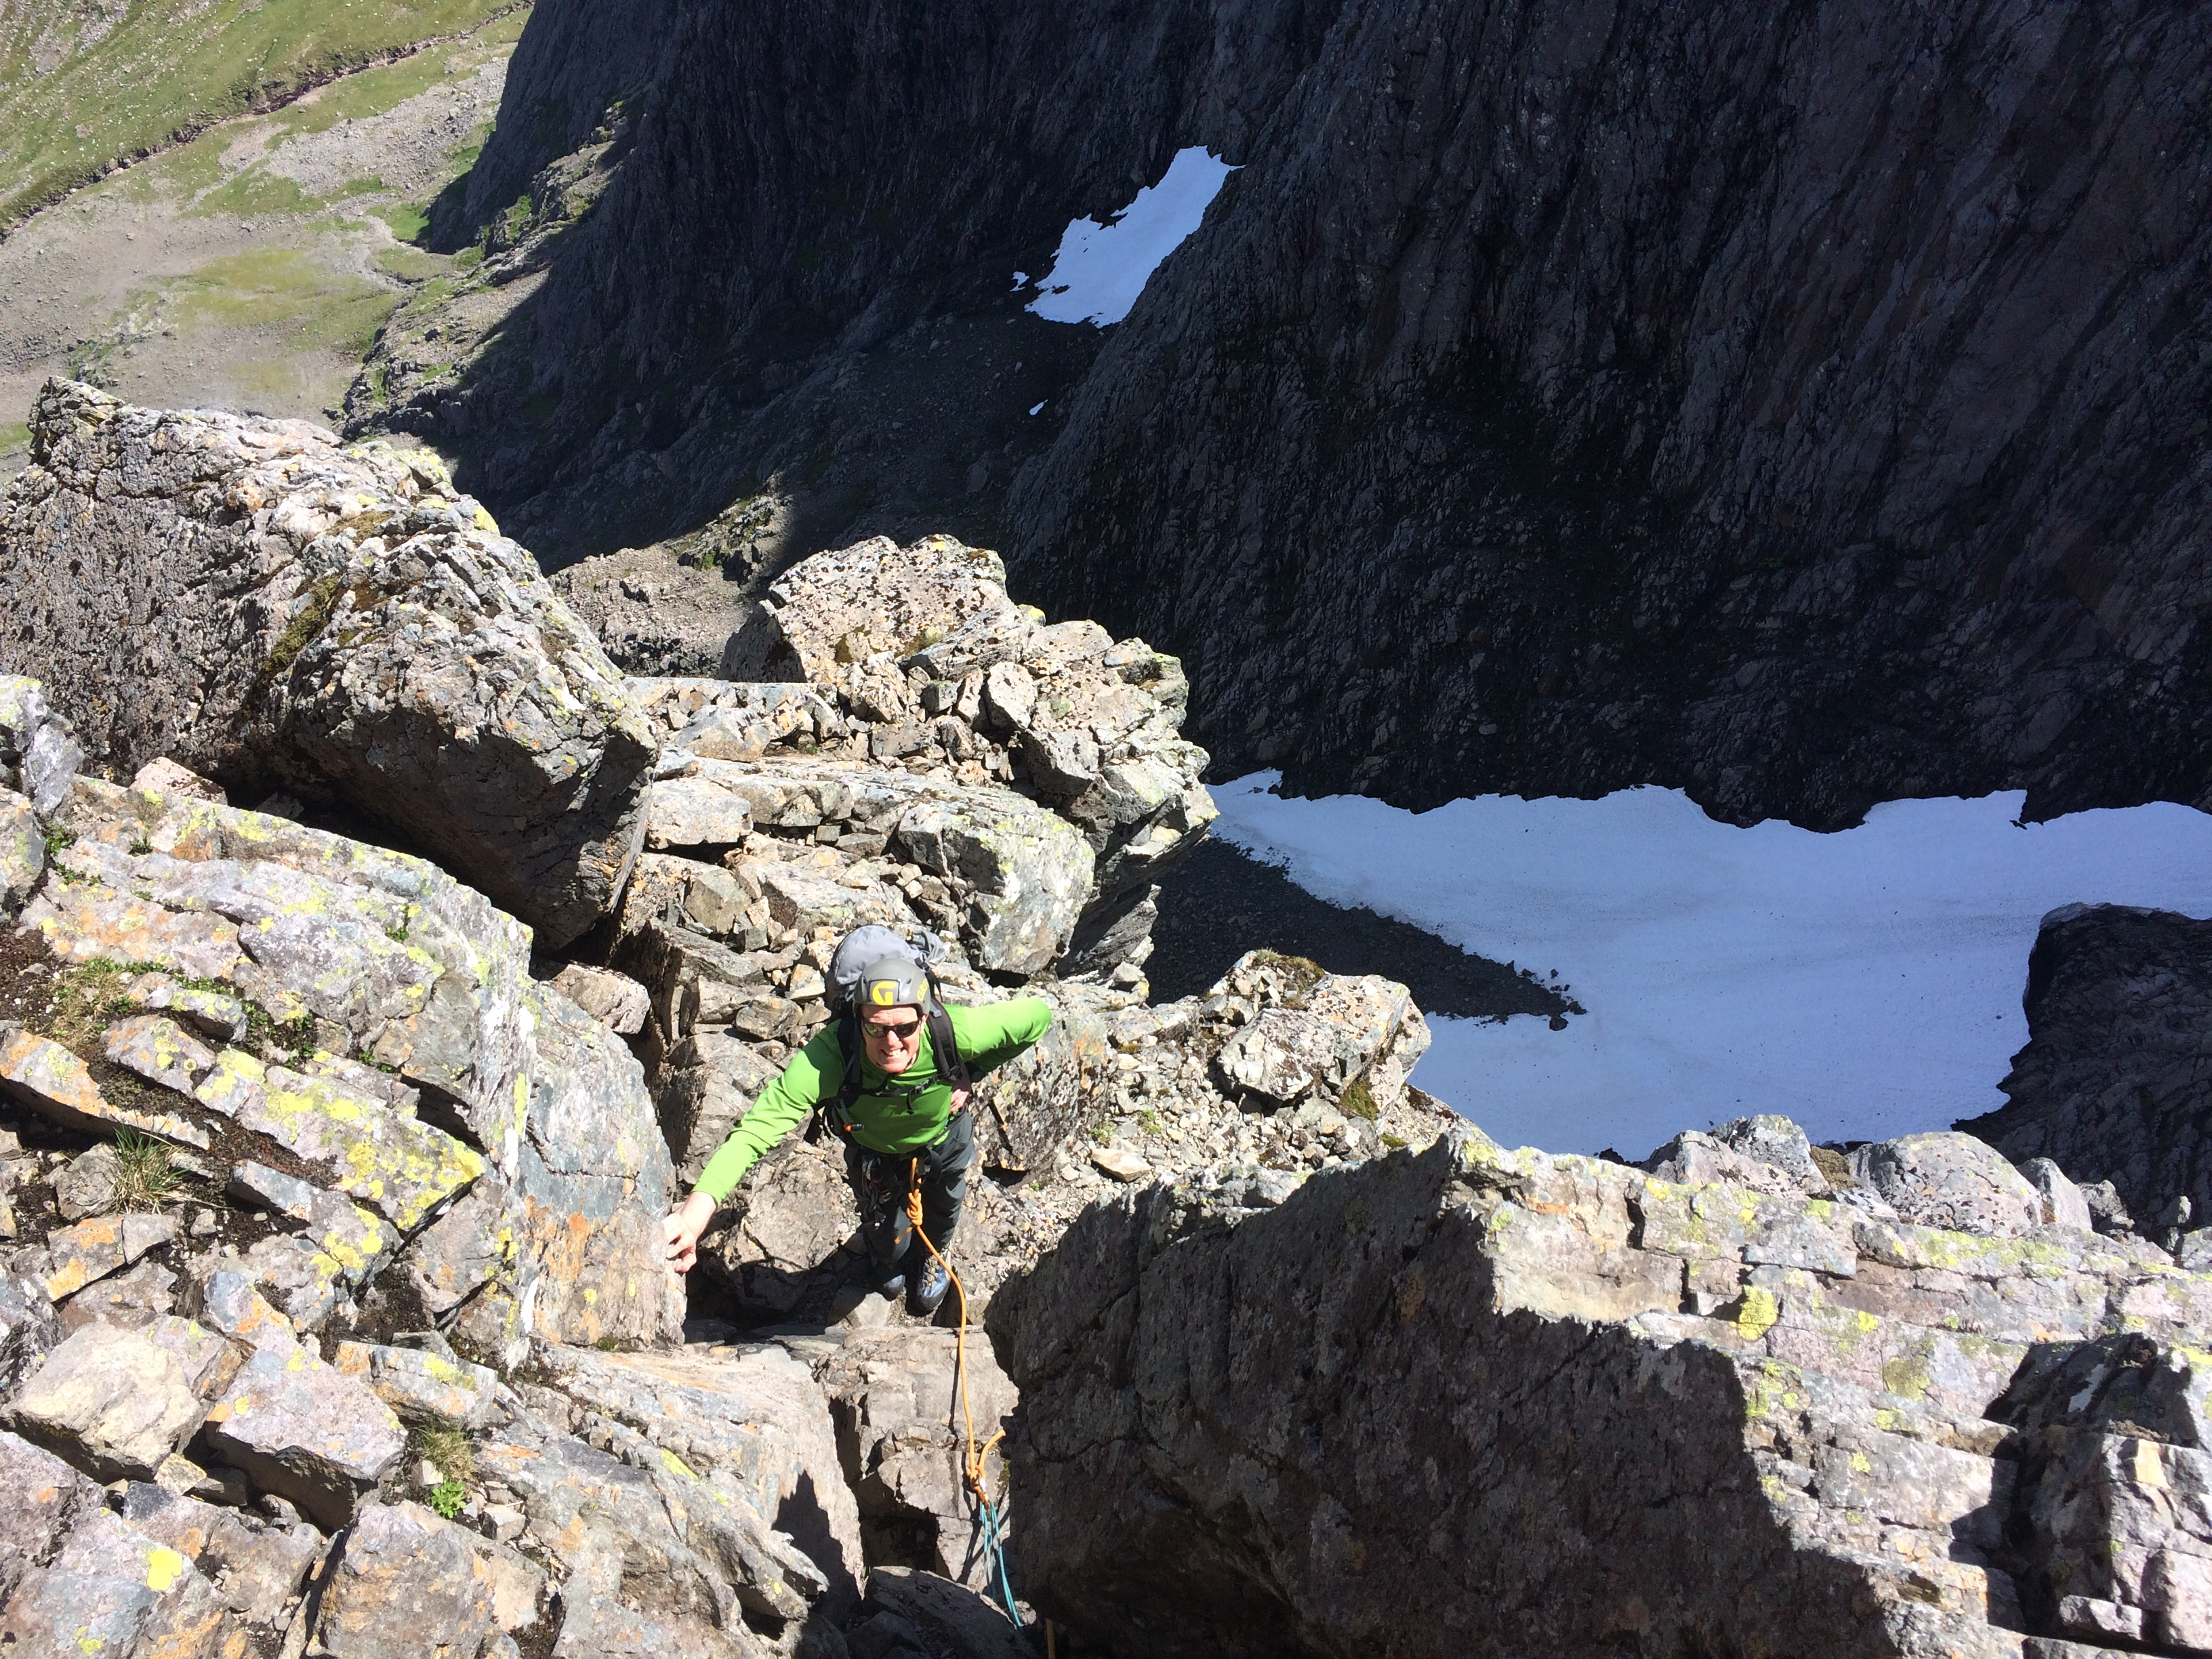 Tower Ridge, Ben Nevis with a Tower Ridge Guide, Lochaber Guides, Tower Ridge Guided Climb, Tower Ridge Mountain Guide